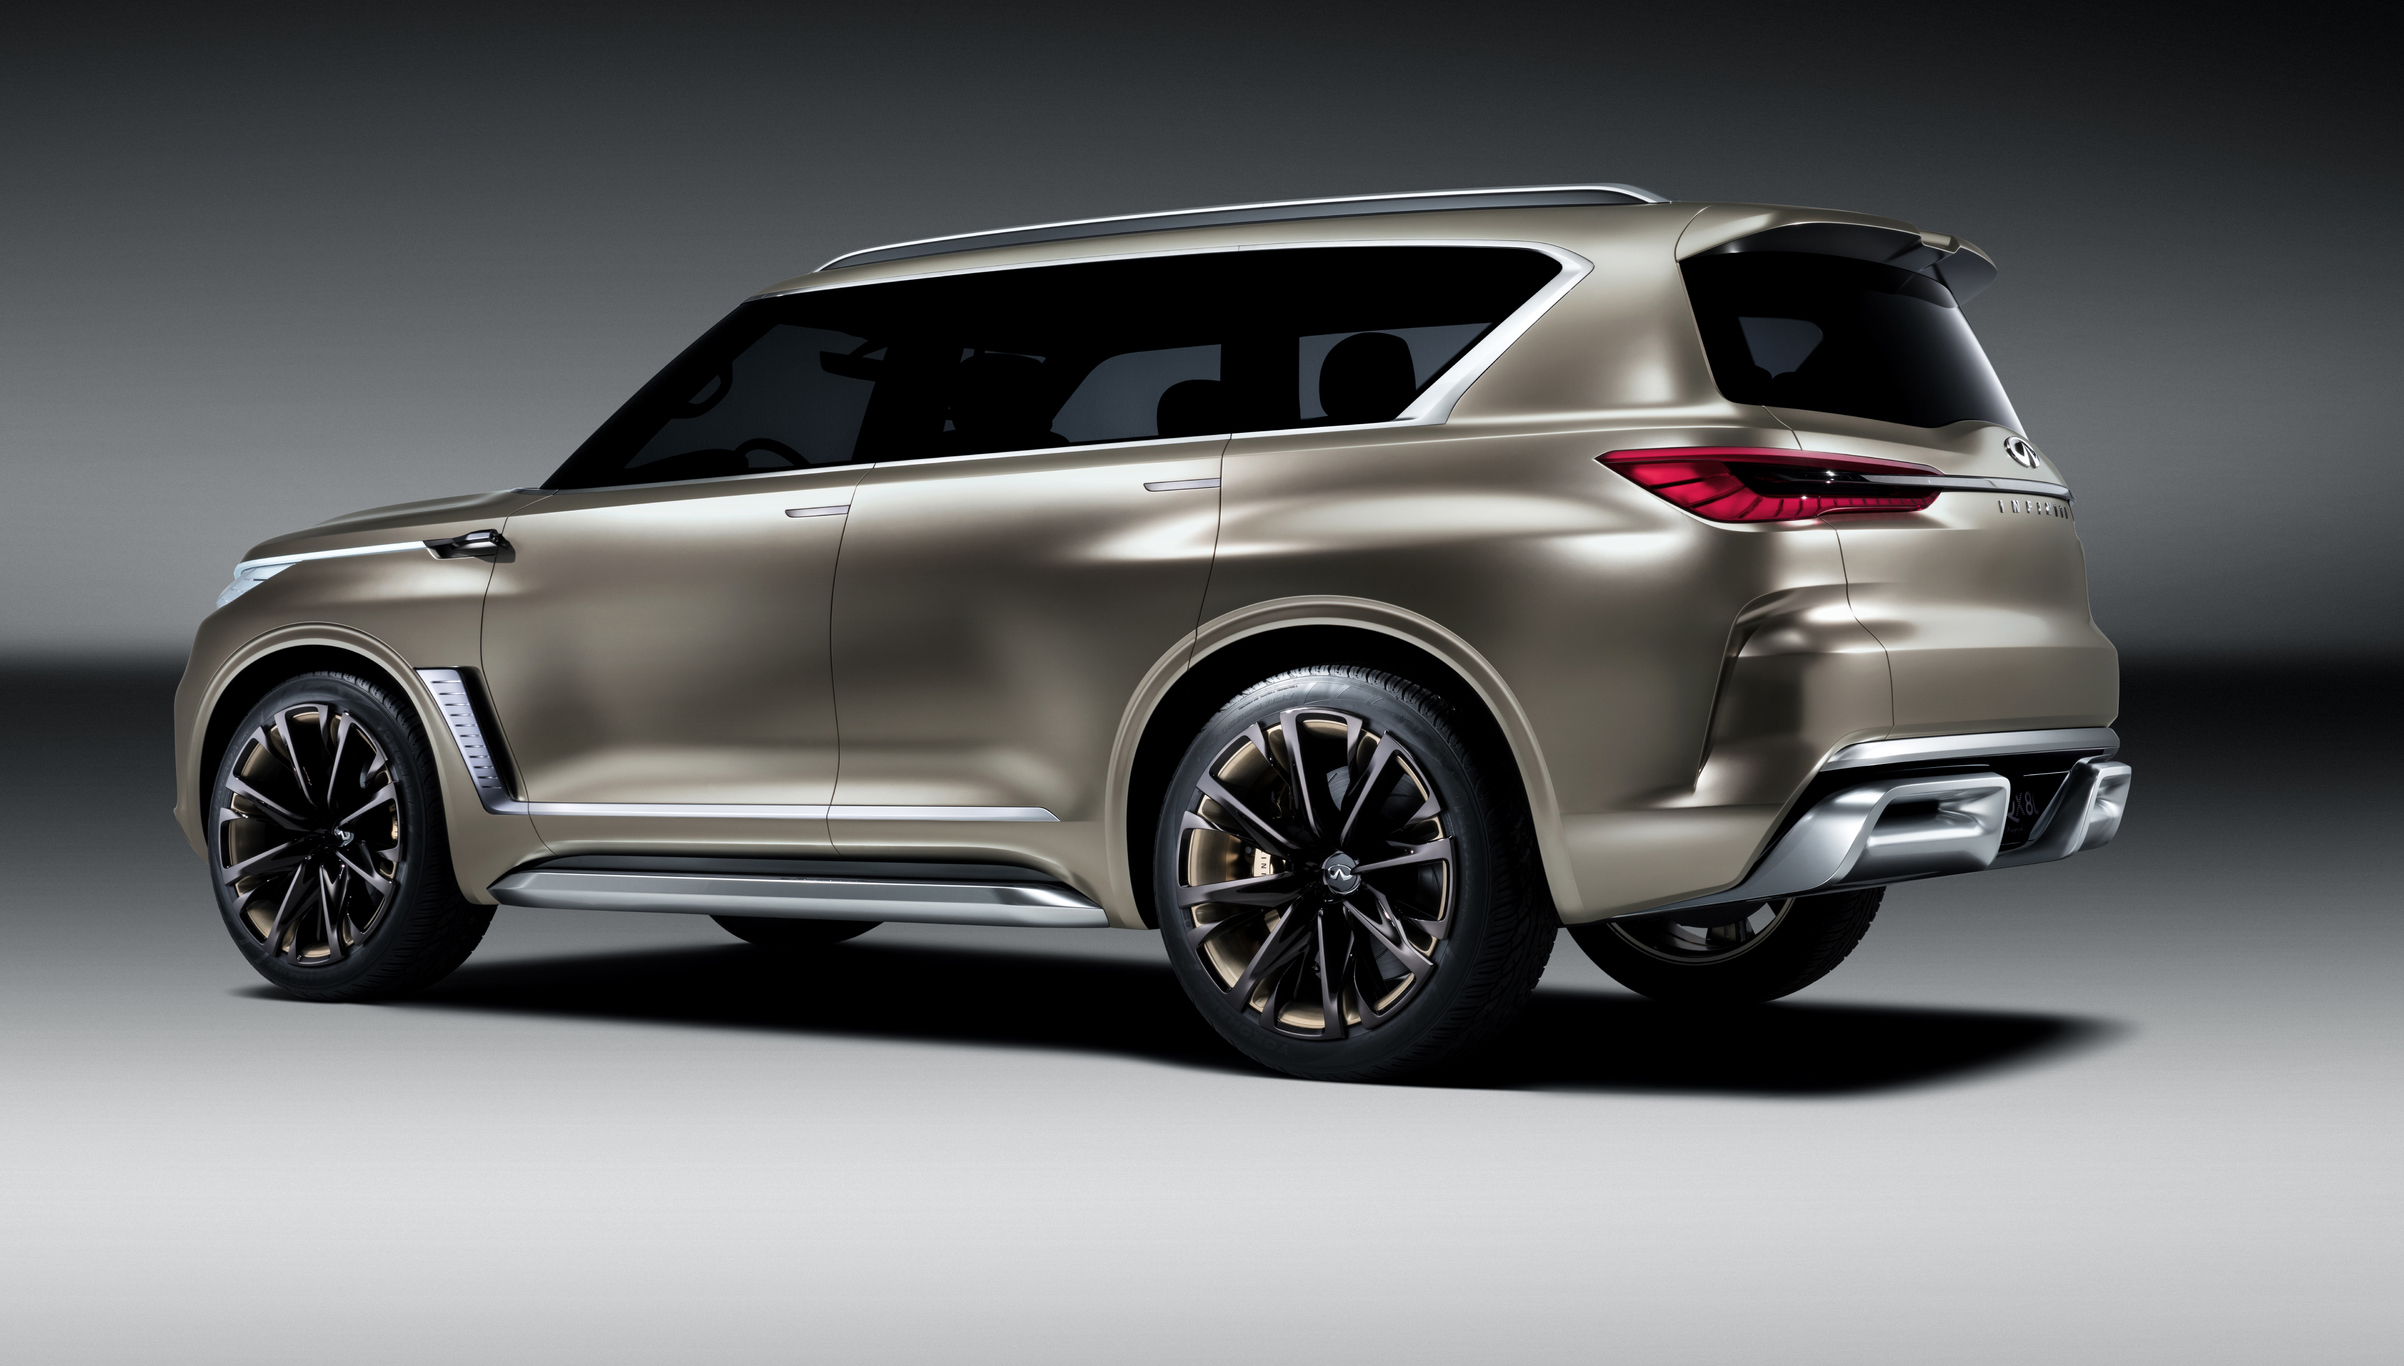 infiniti qx80 monograph concept revealed update photos 1 of 12. Black Bedroom Furniture Sets. Home Design Ideas